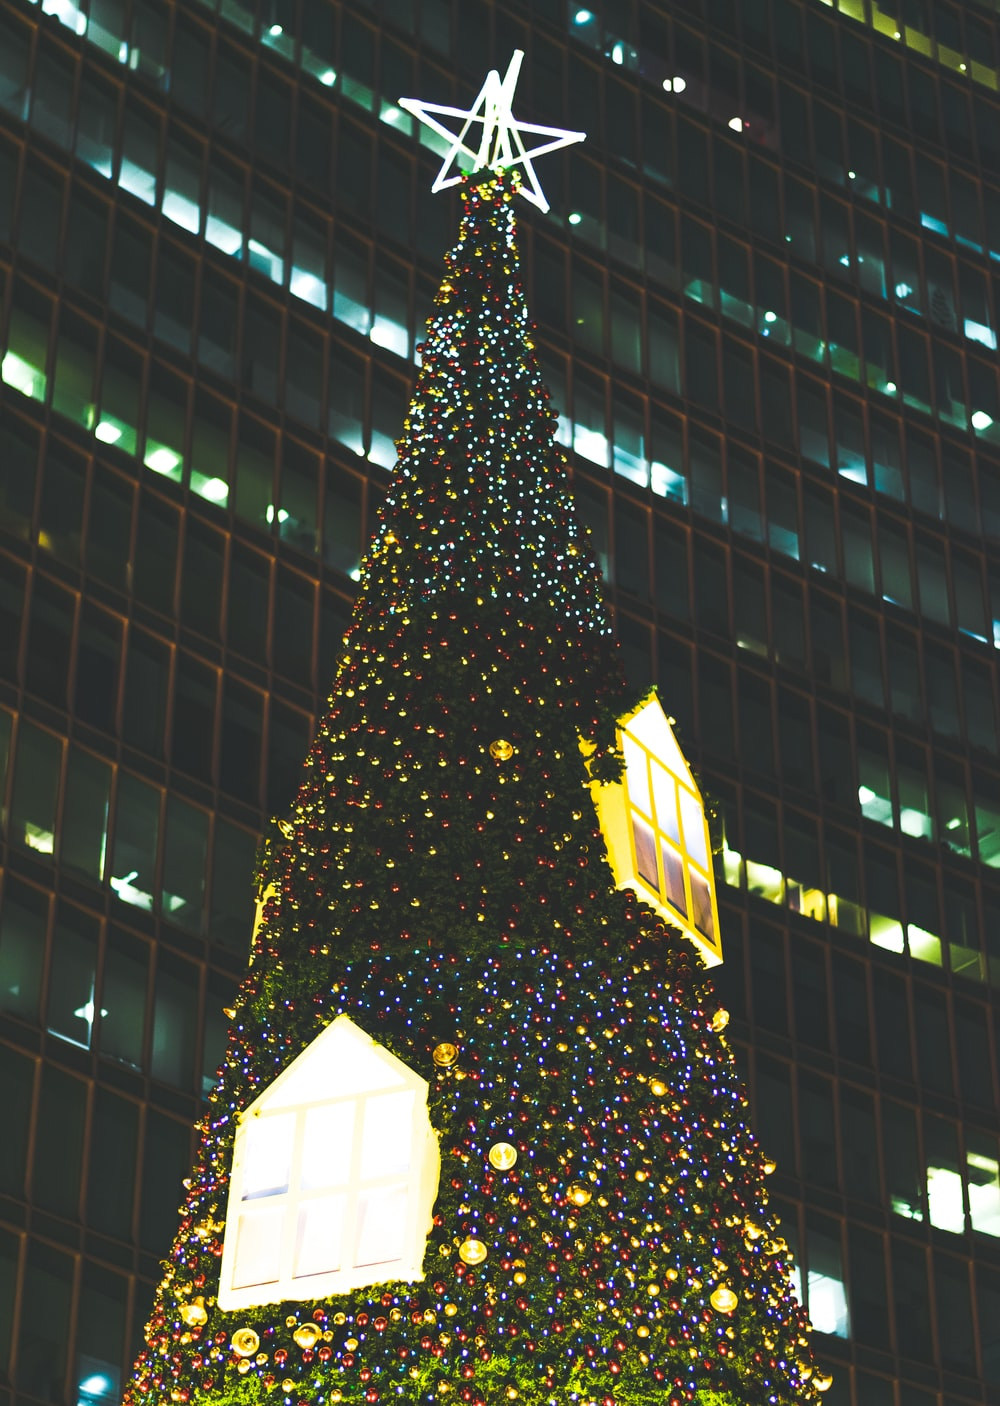 Lighted Christmas Tree Outside Building